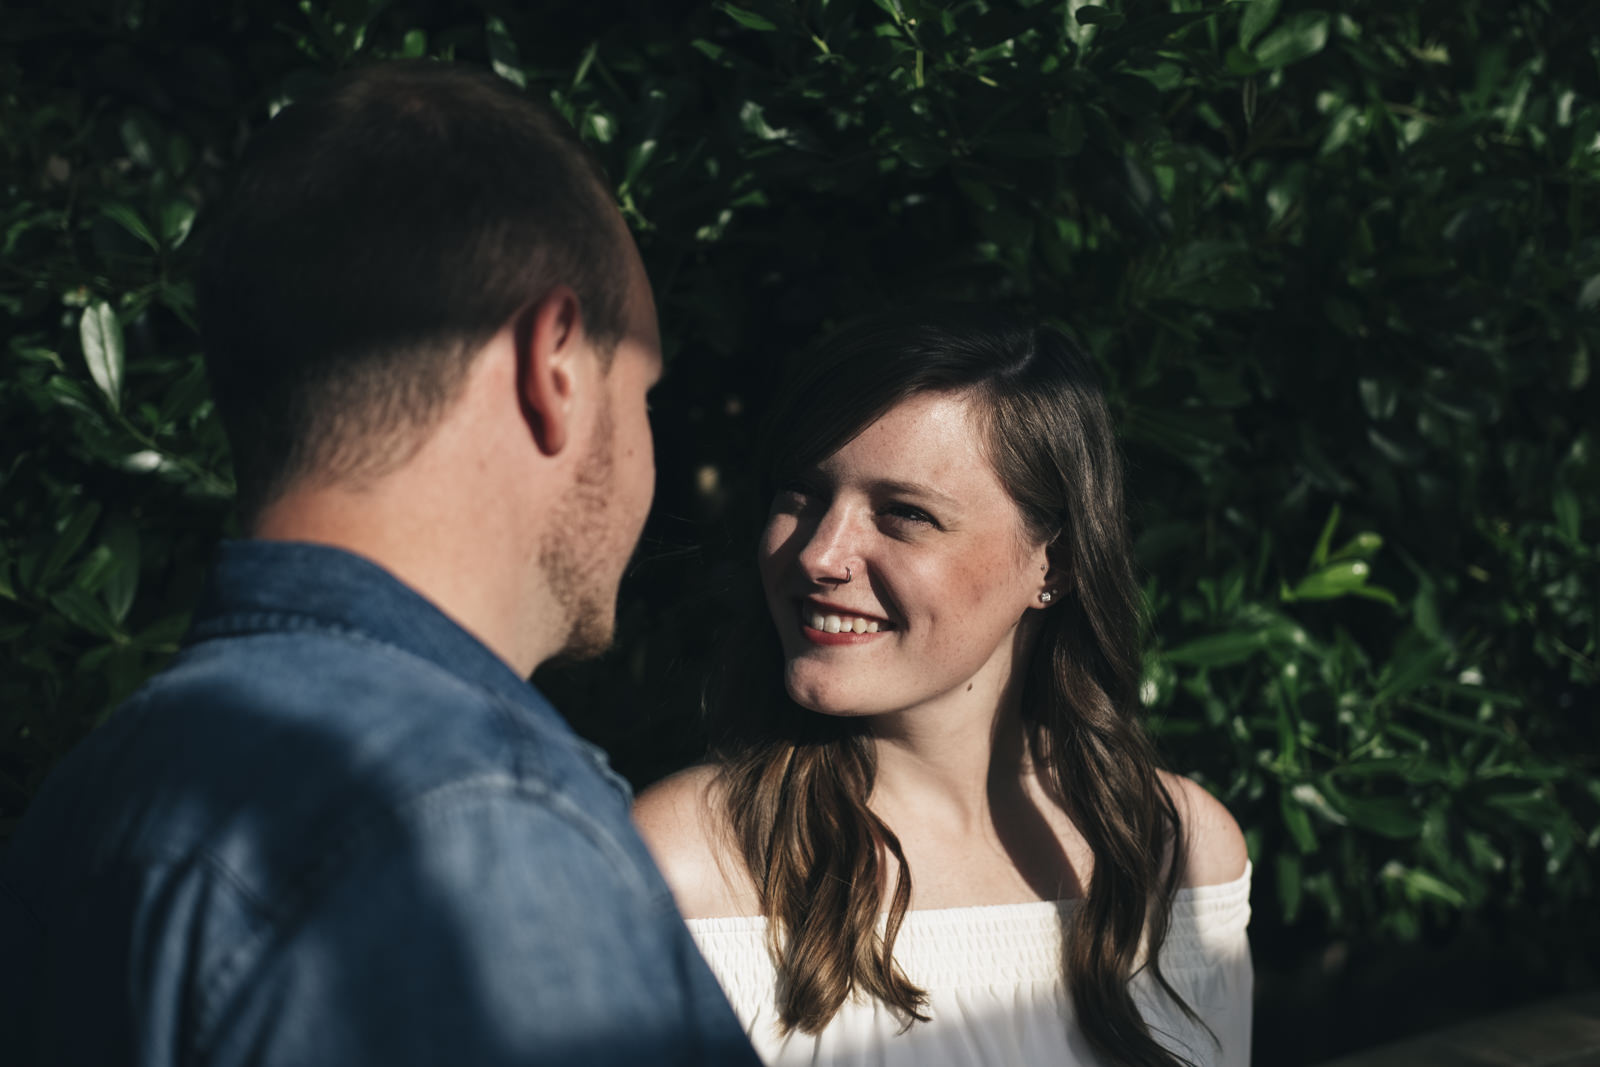 Happy bride-to-be during Ann Arbor, Michigan engagement session.